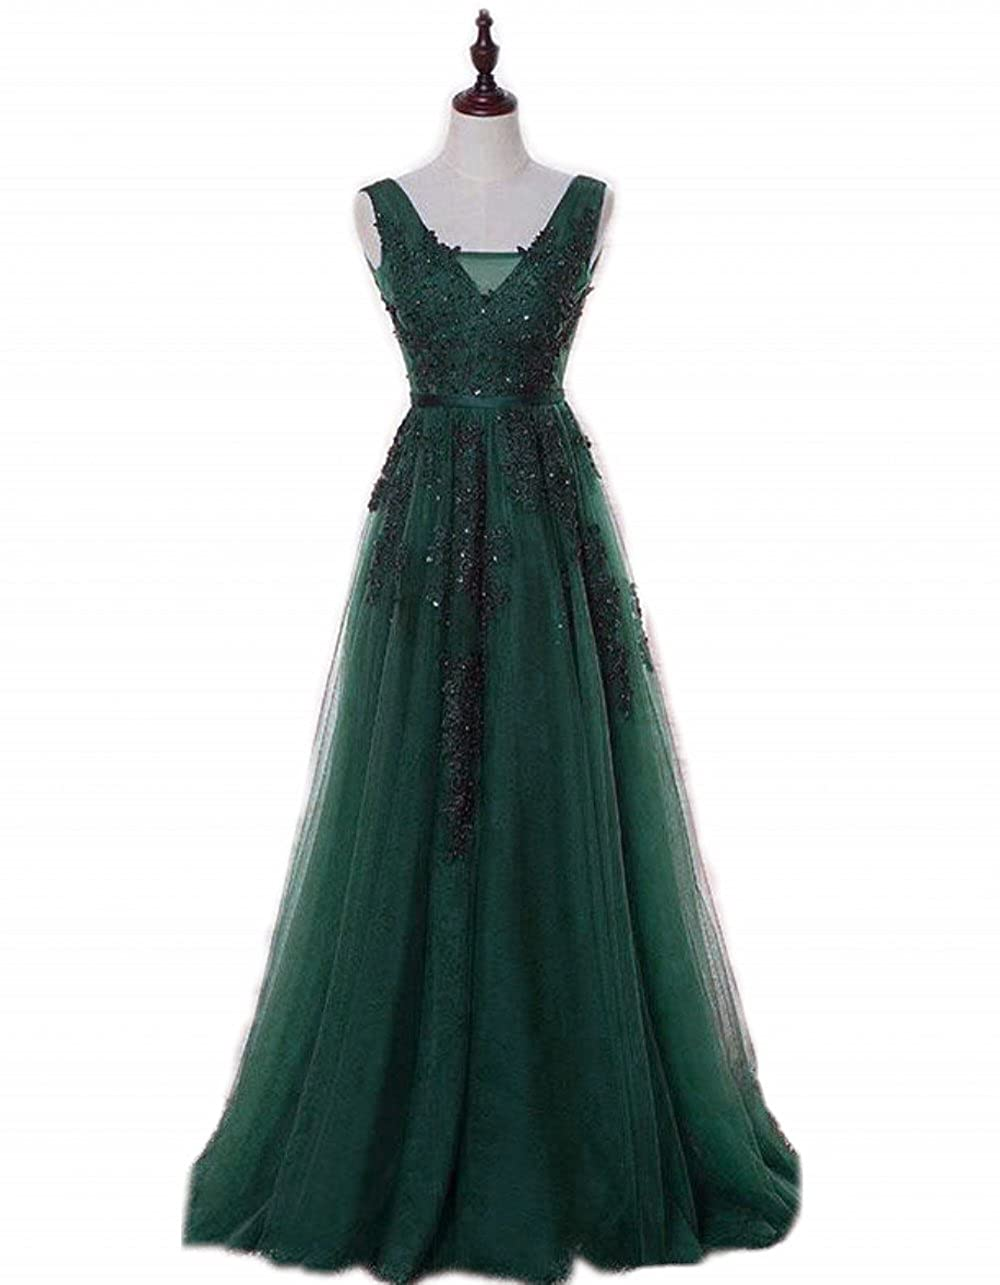 King's Love Women's V-Neck Beads Lace Tulle Backless Evening Dress Long Prom Dresses